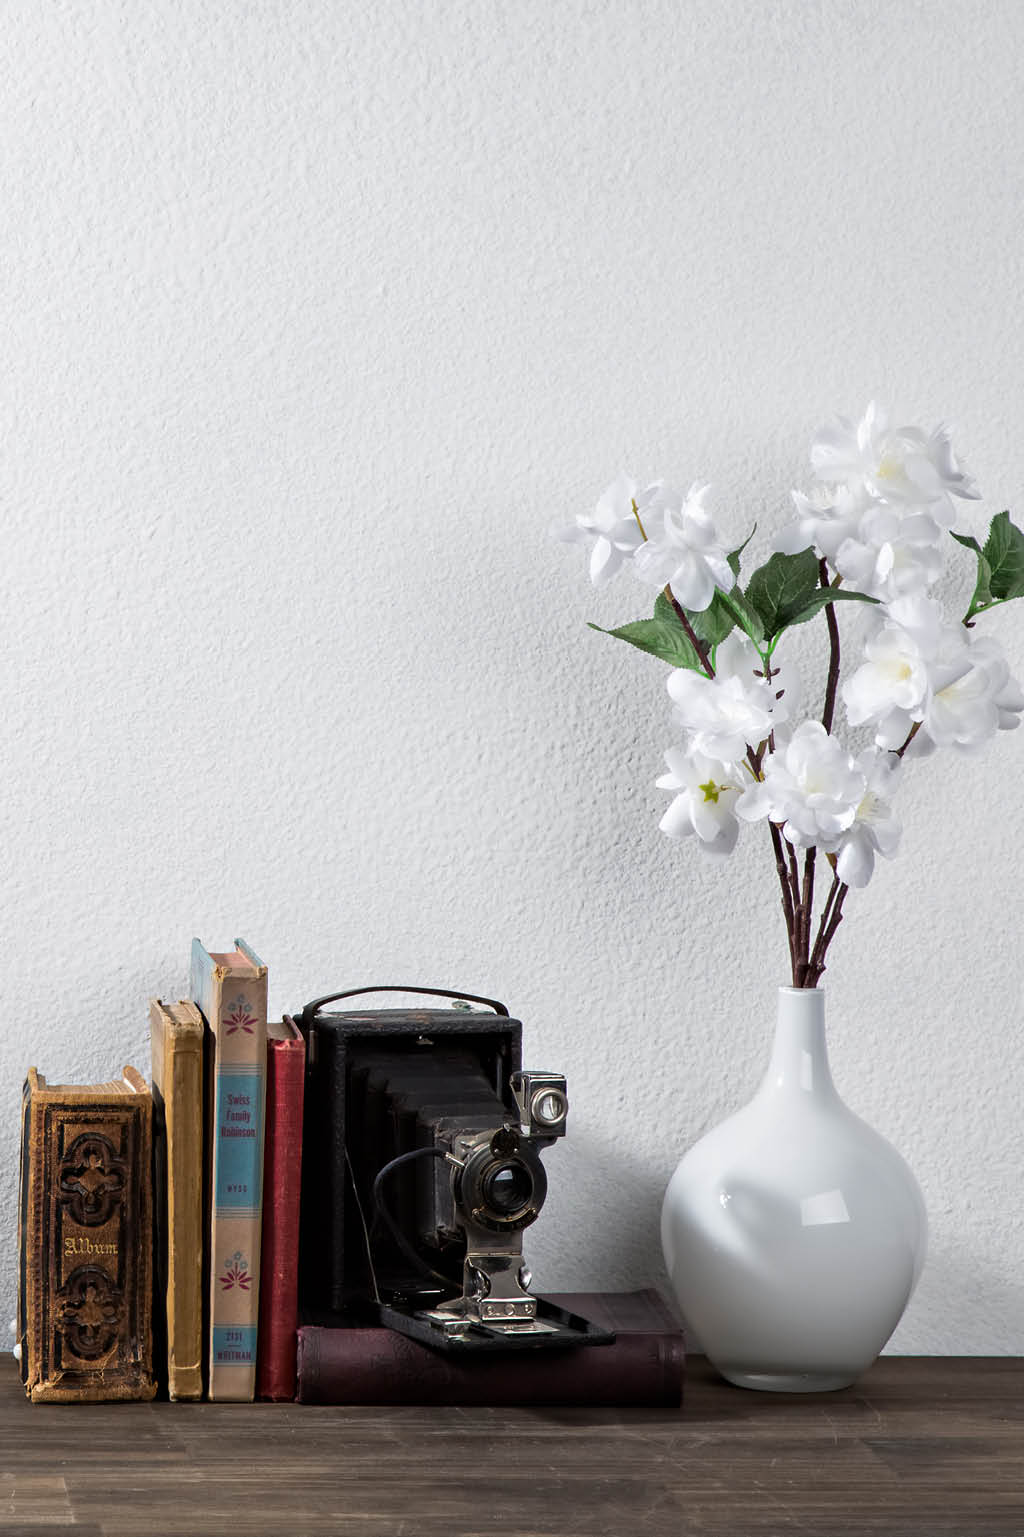 white wall and flowers with books